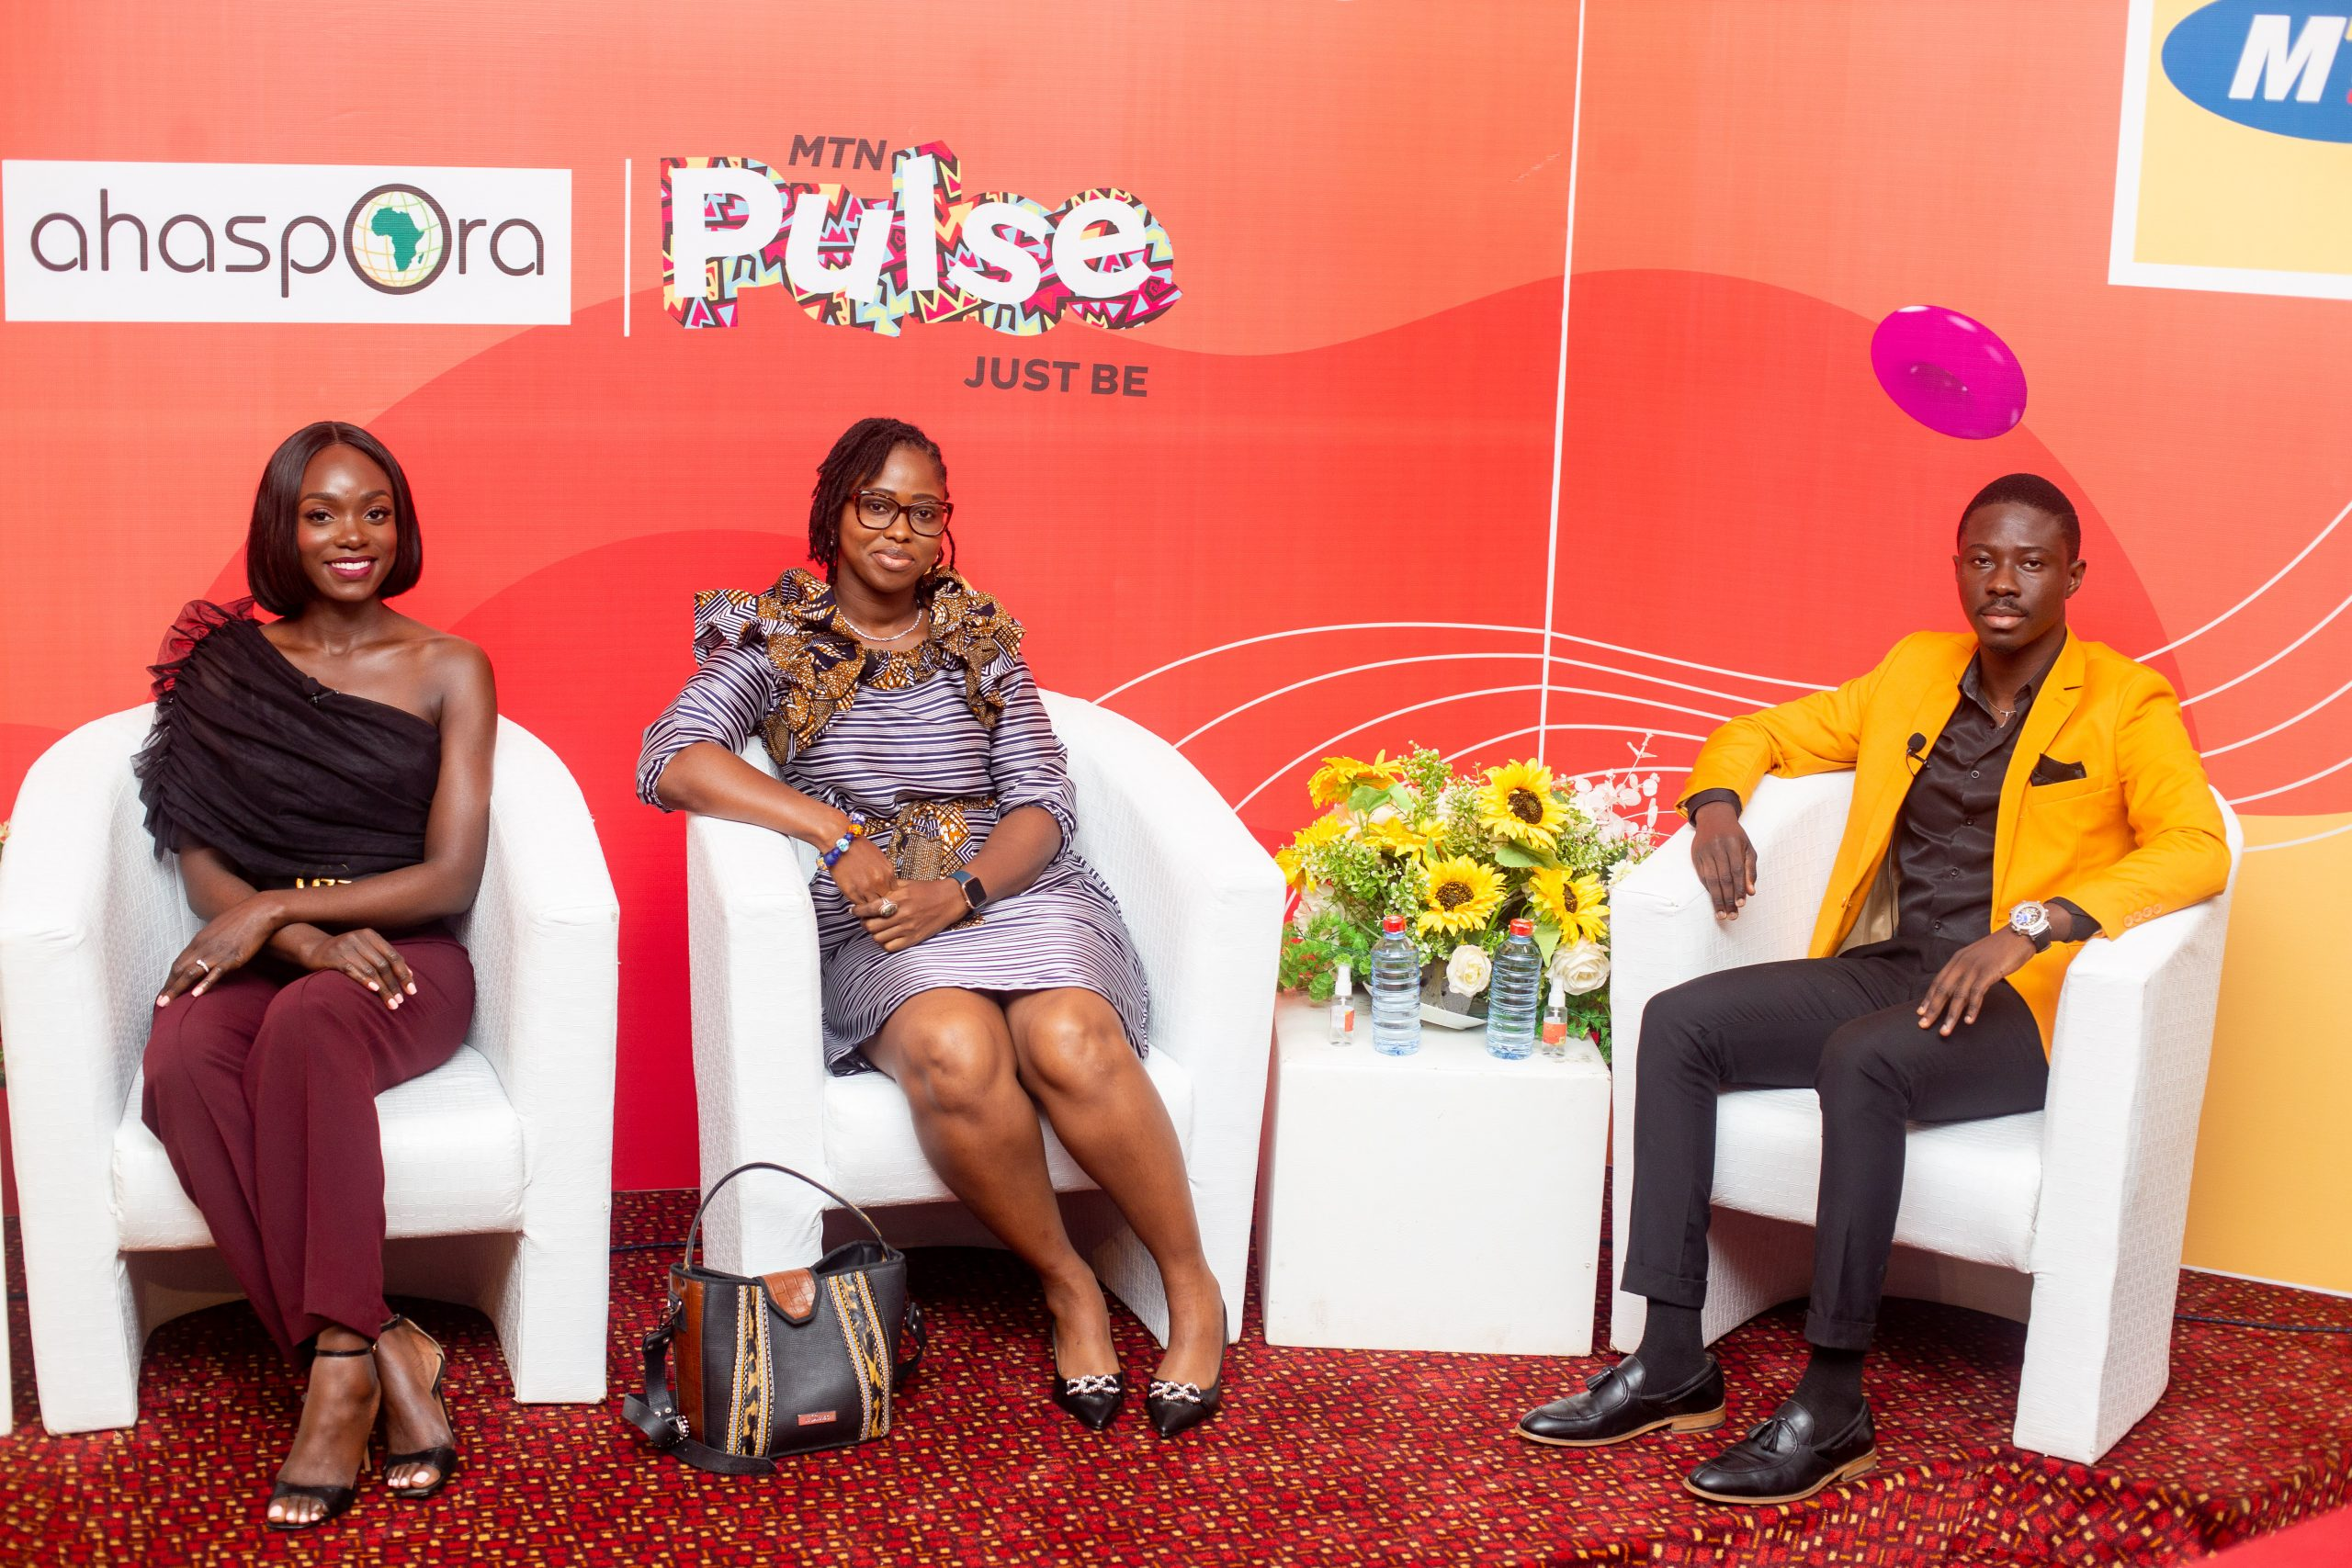 Just Be Series panelists - (from the right) Stephanie Adu, CEO, Colorbox Cosmetics, Mabel Simpson Team lead at mSimps and Ekow Mclean, founder of The Suit.